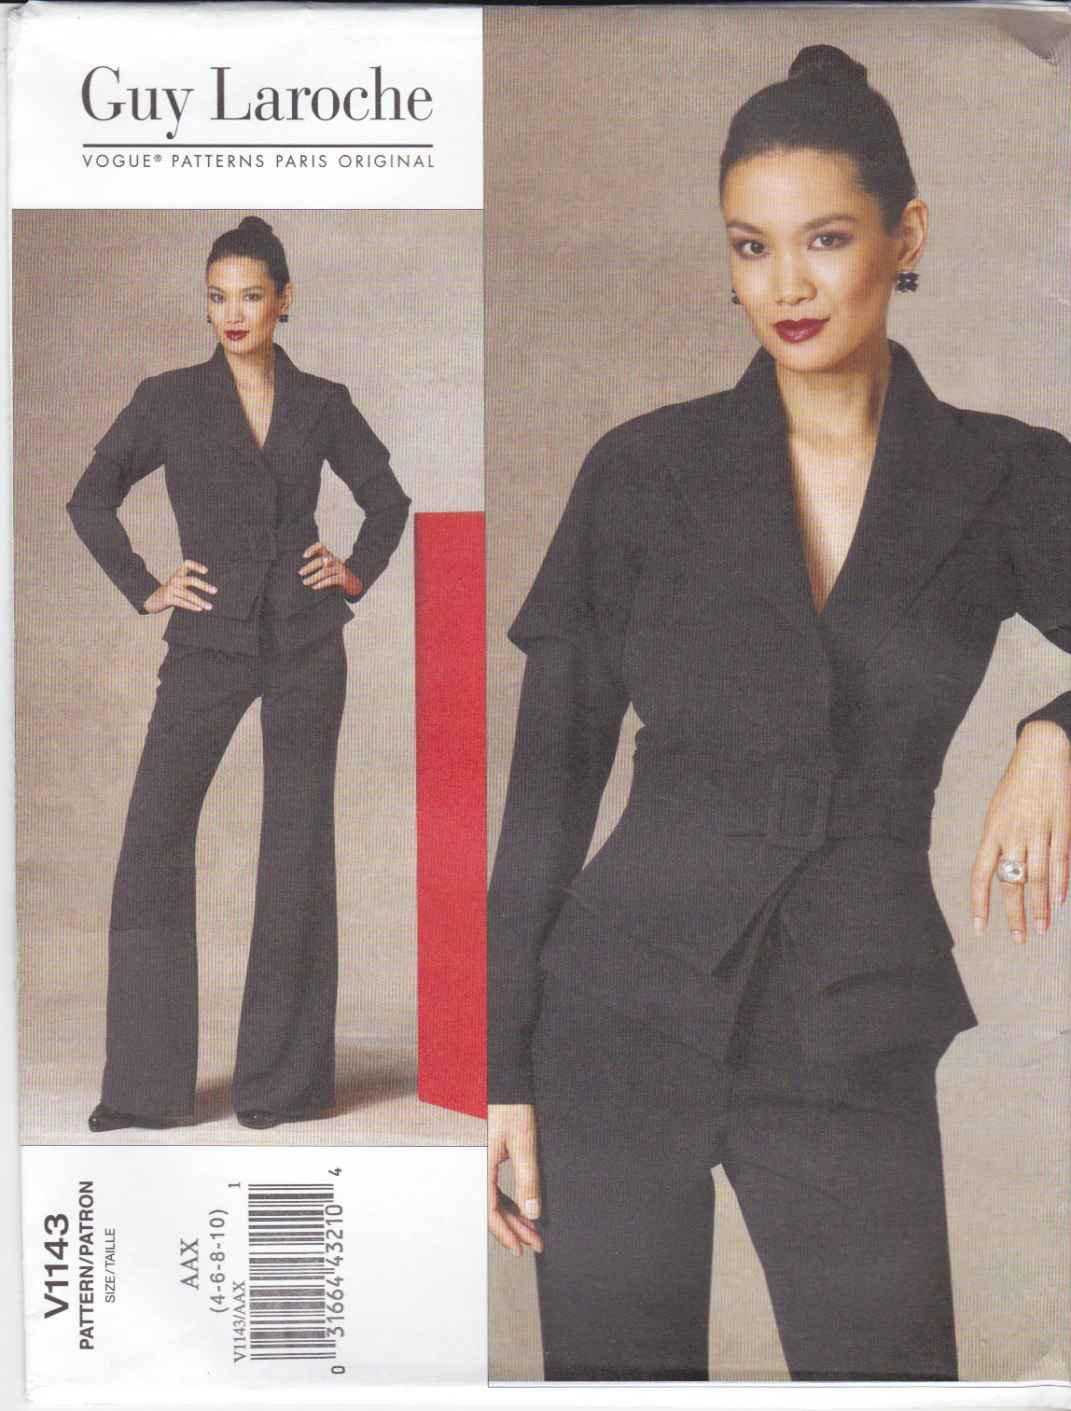 Vogue Sewing Pattern 1143 Misses Sizes 4-10 Guy Laroche Lined Long Sleeve Jacket Pants